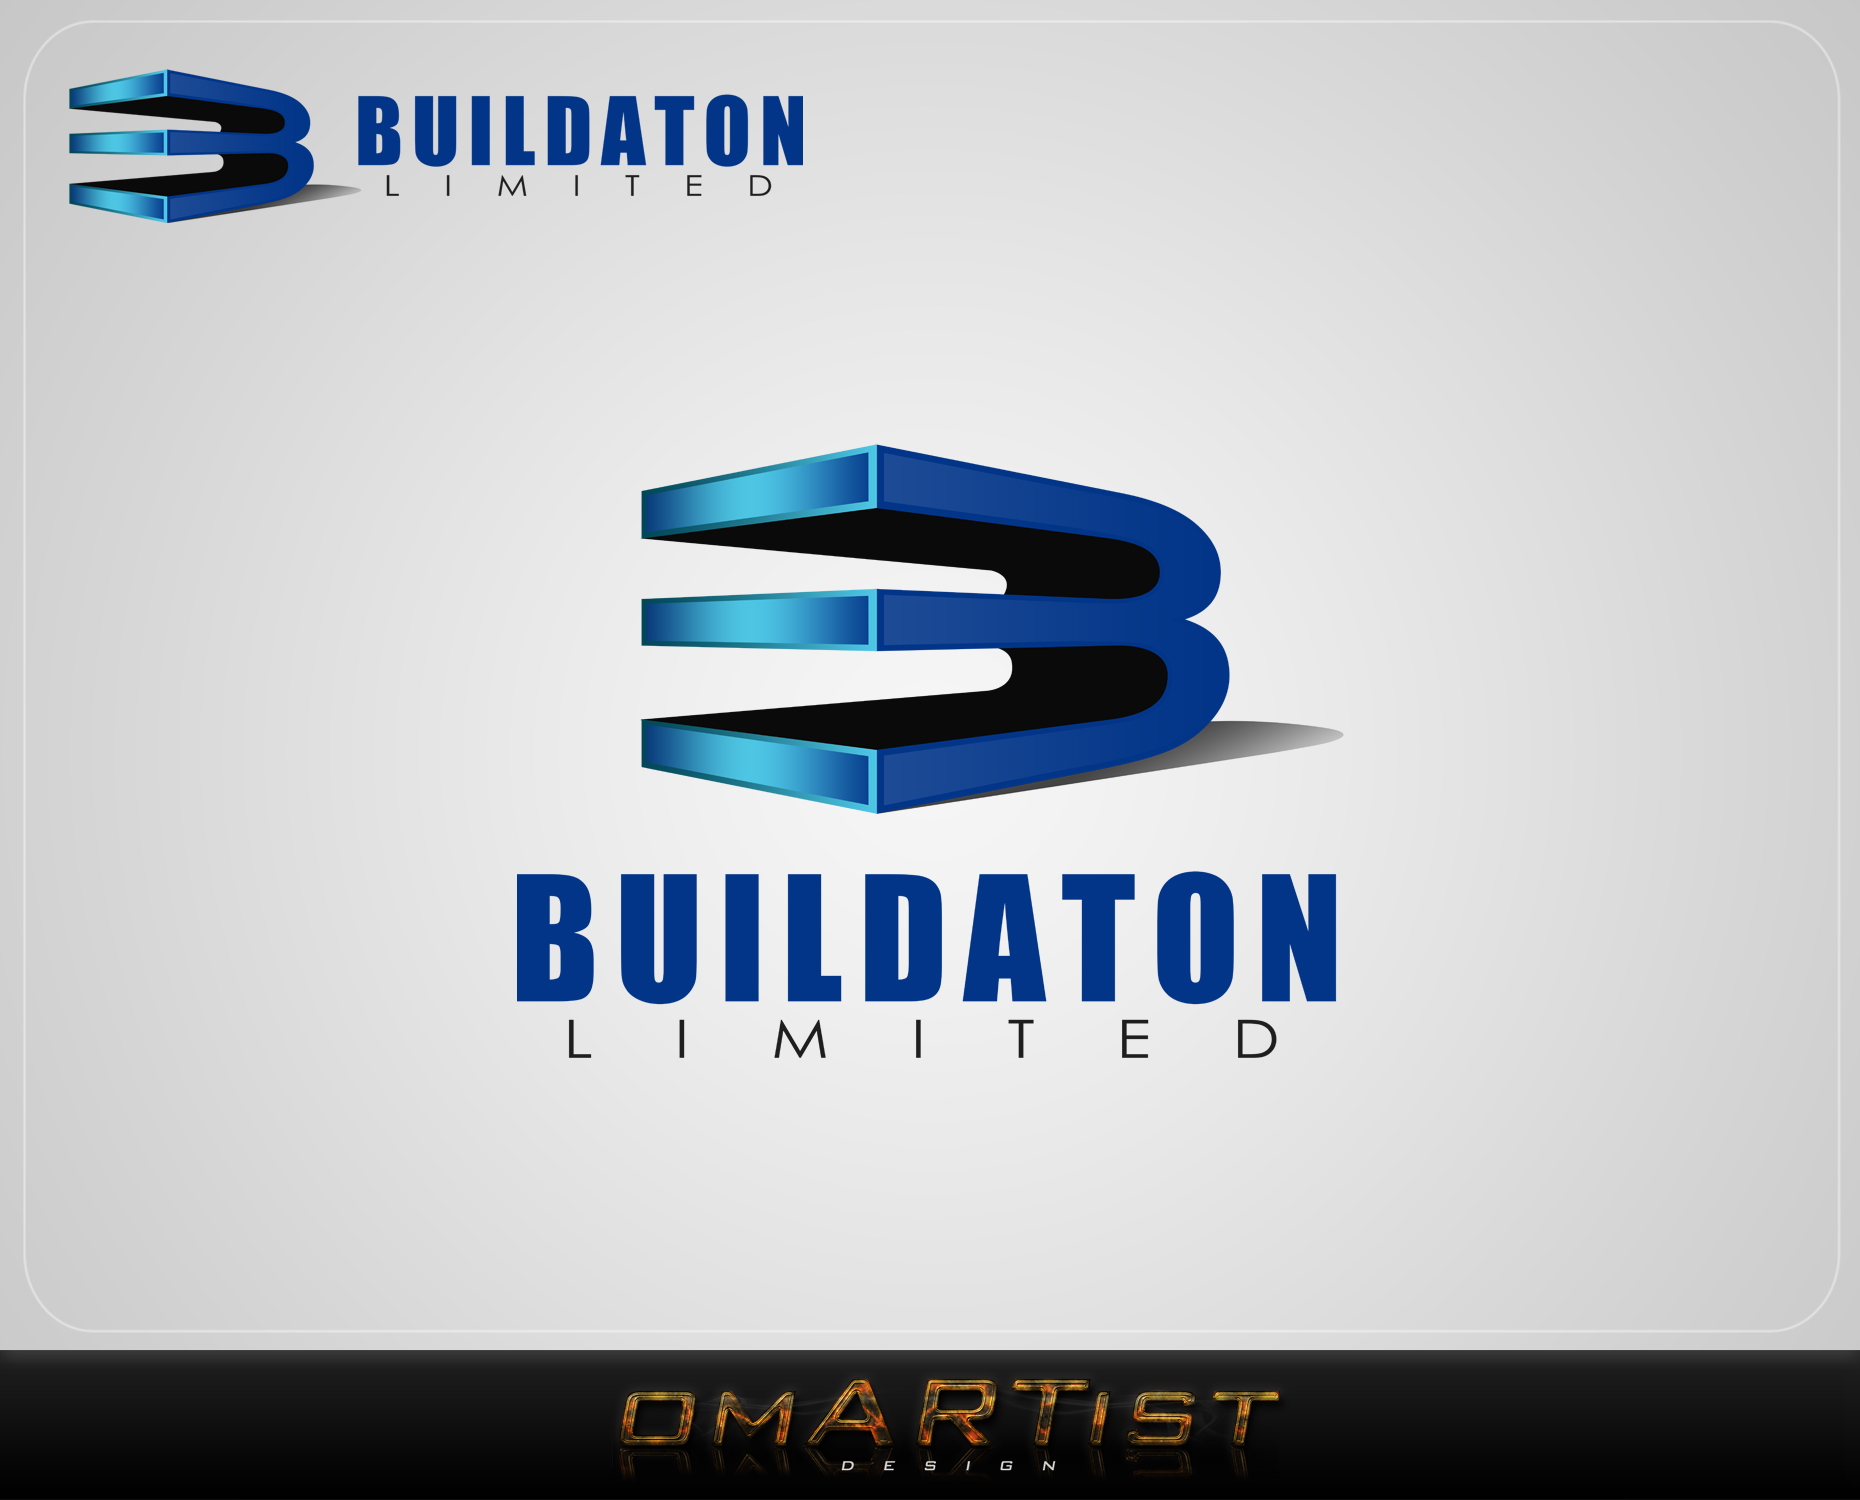 Logo Design by omARTist - Entry No. 62 in the Logo Design Contest Artistic Logo Design for Buildaton Limited.